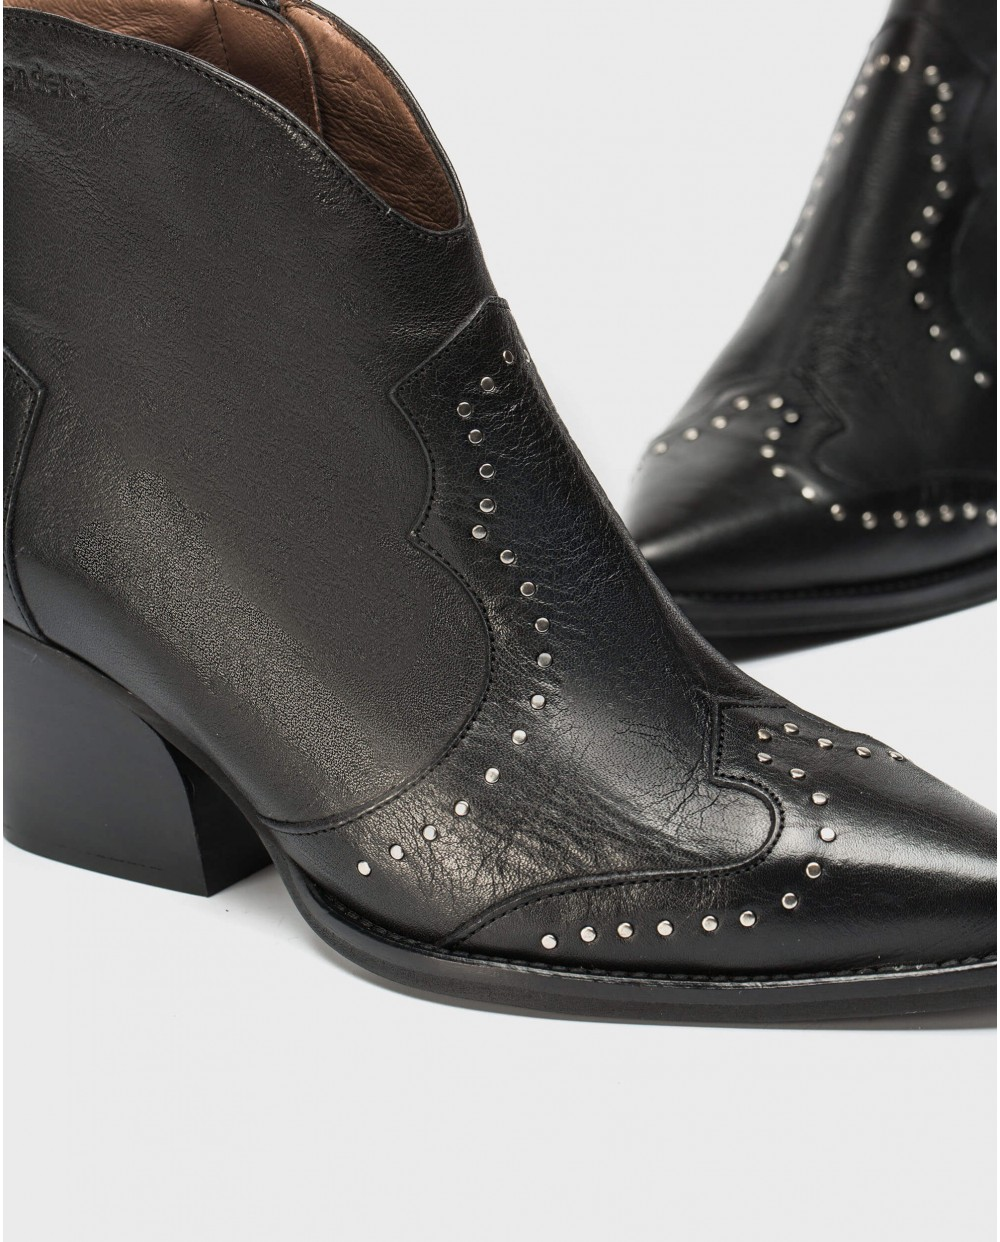 Wonders-Ankle Boots-Cowboy style ankle boot with appliques